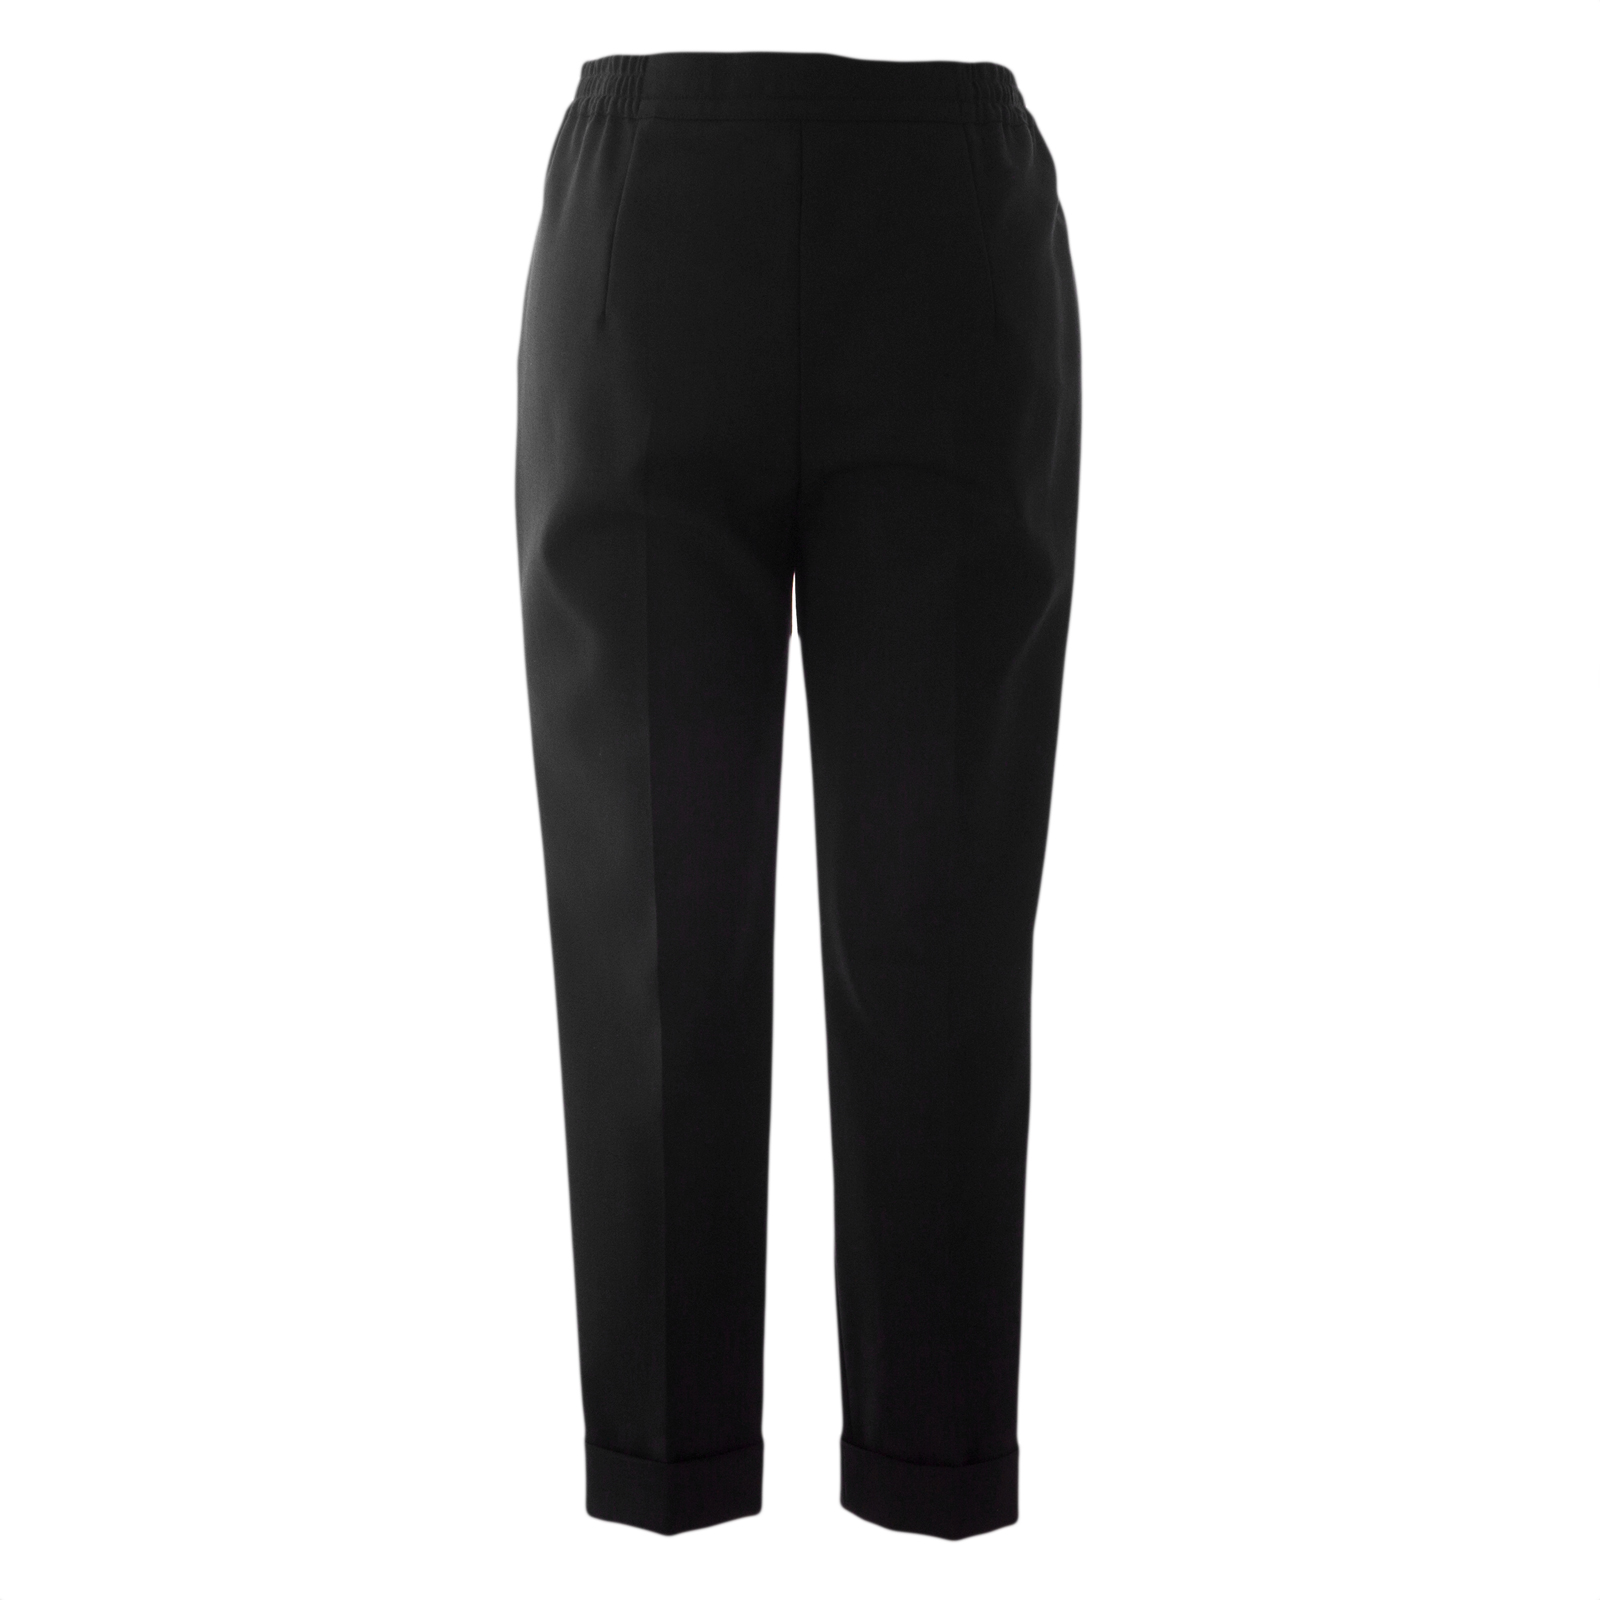 MAX MARA Women/'s Mabel Relaxed Fit Stretch-Wool Pants $545 NWT